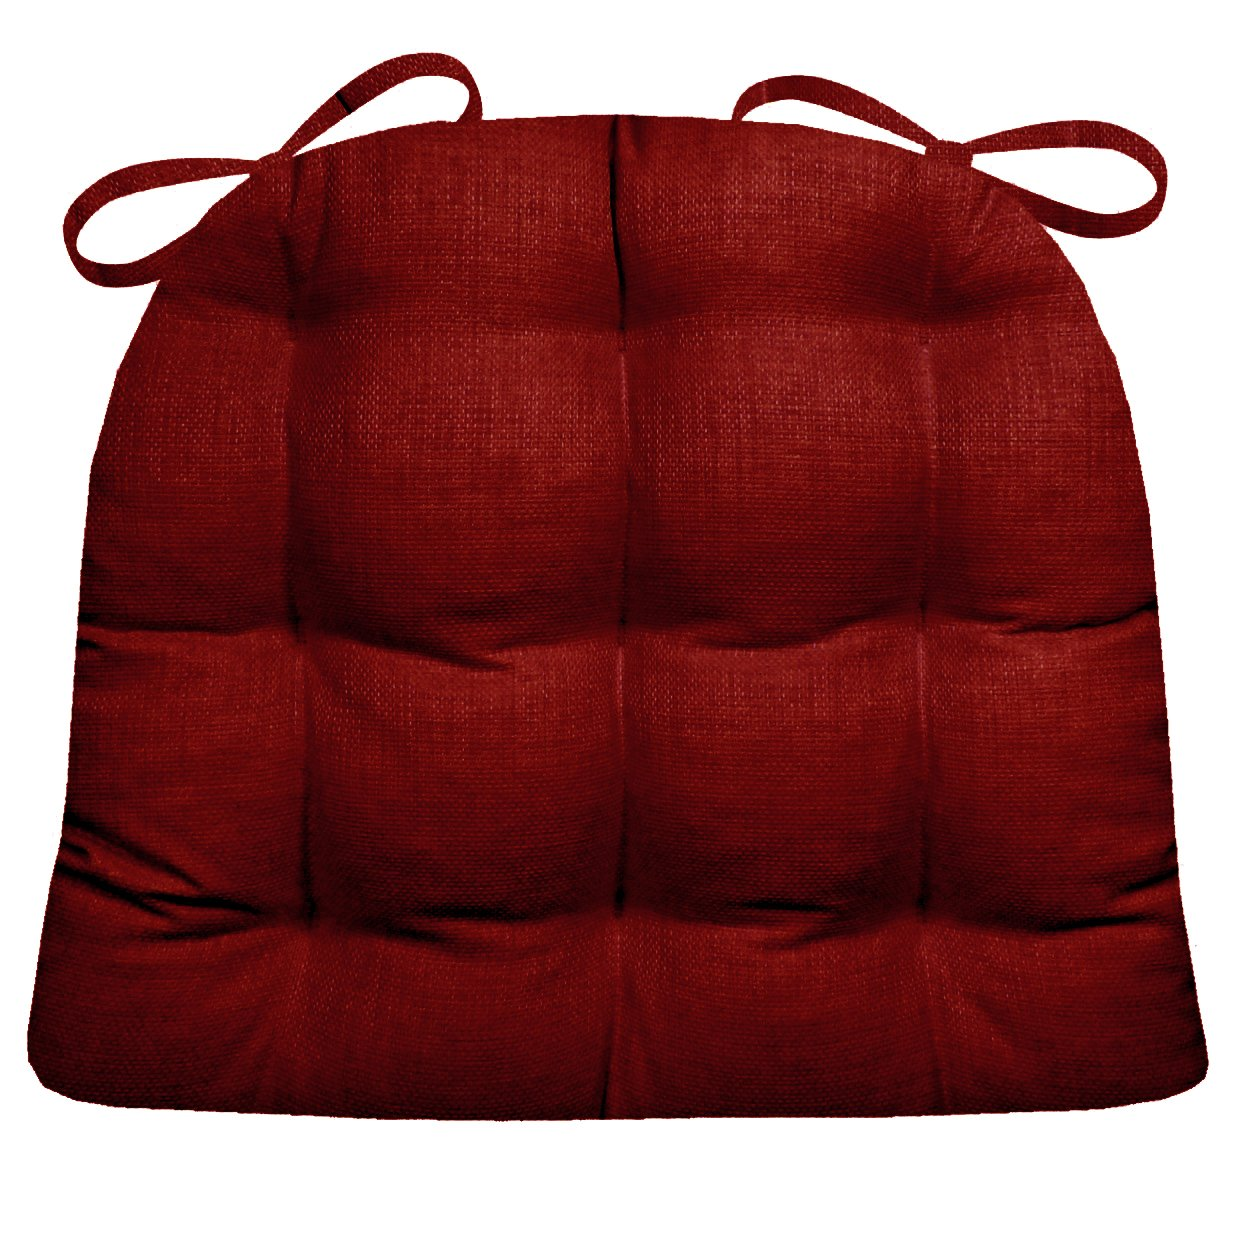 Barnett Products Wrought Iron Chair Cushion – Rave Red Solid Color – Medium – Indoor Outdoor Mildew Resistant, Fade Resistant – Latex Foam Filled Cushion – Reversible